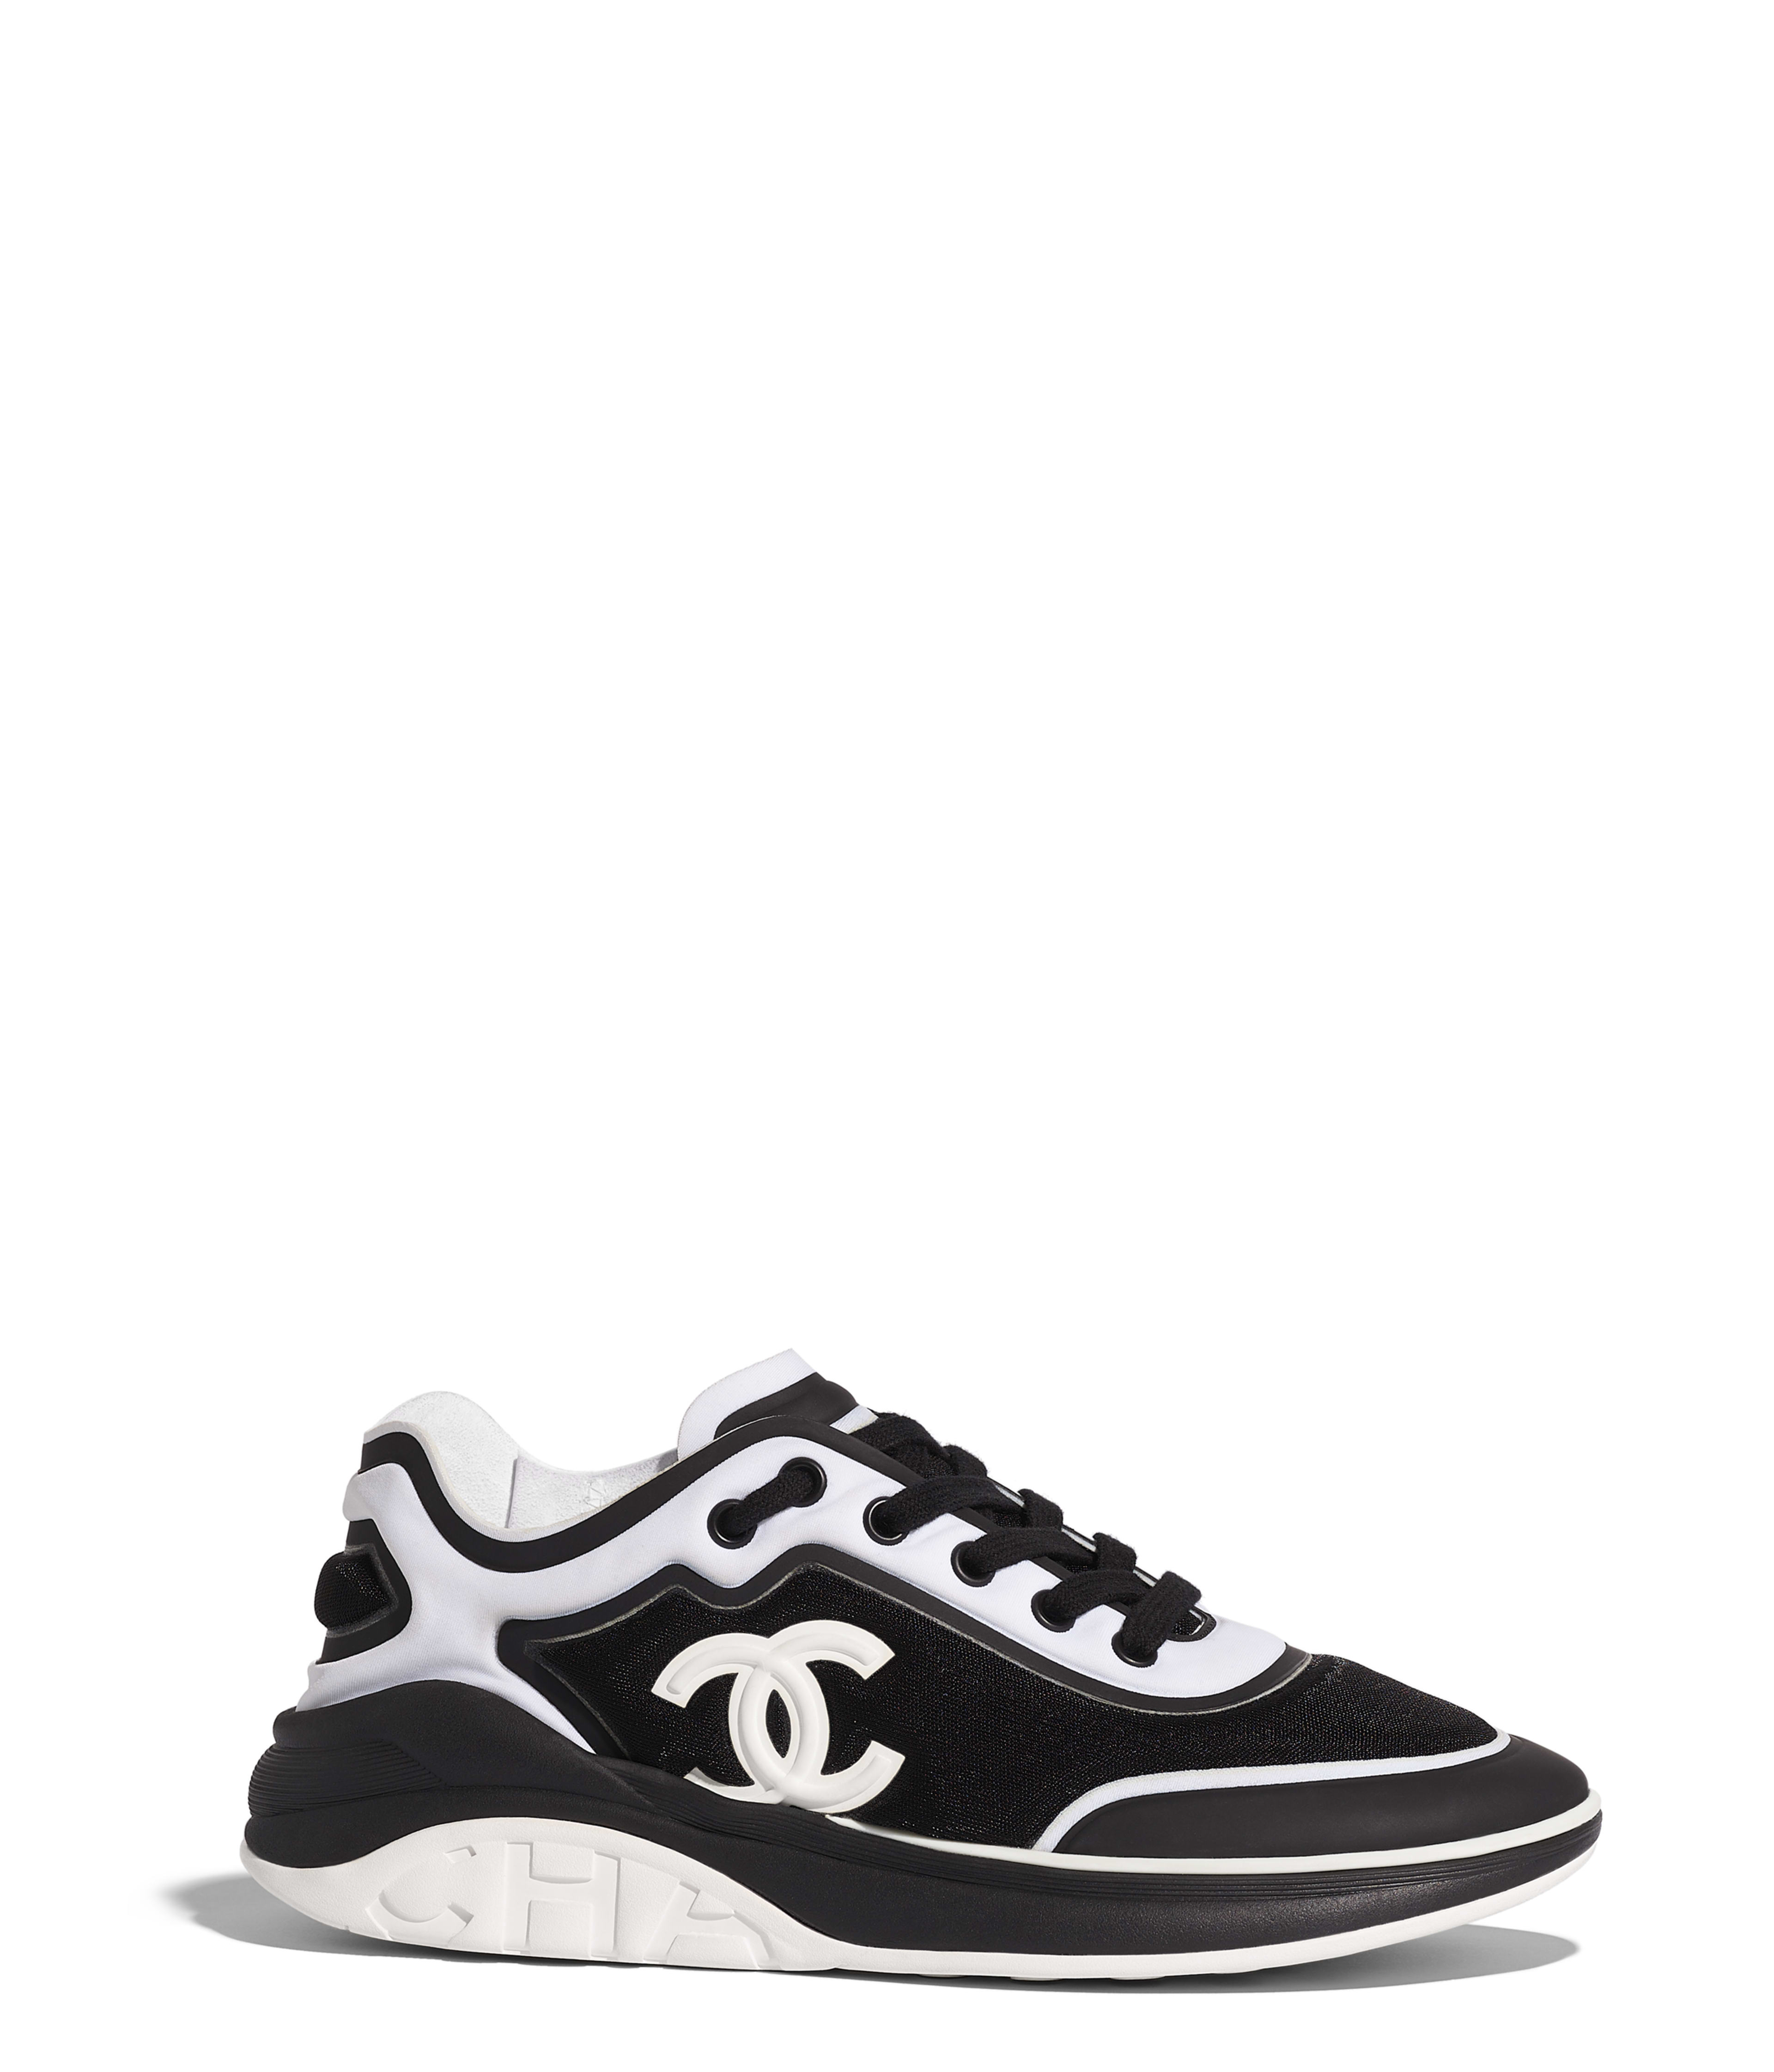 0832aadb Sneakers - Shoes | CHANEL